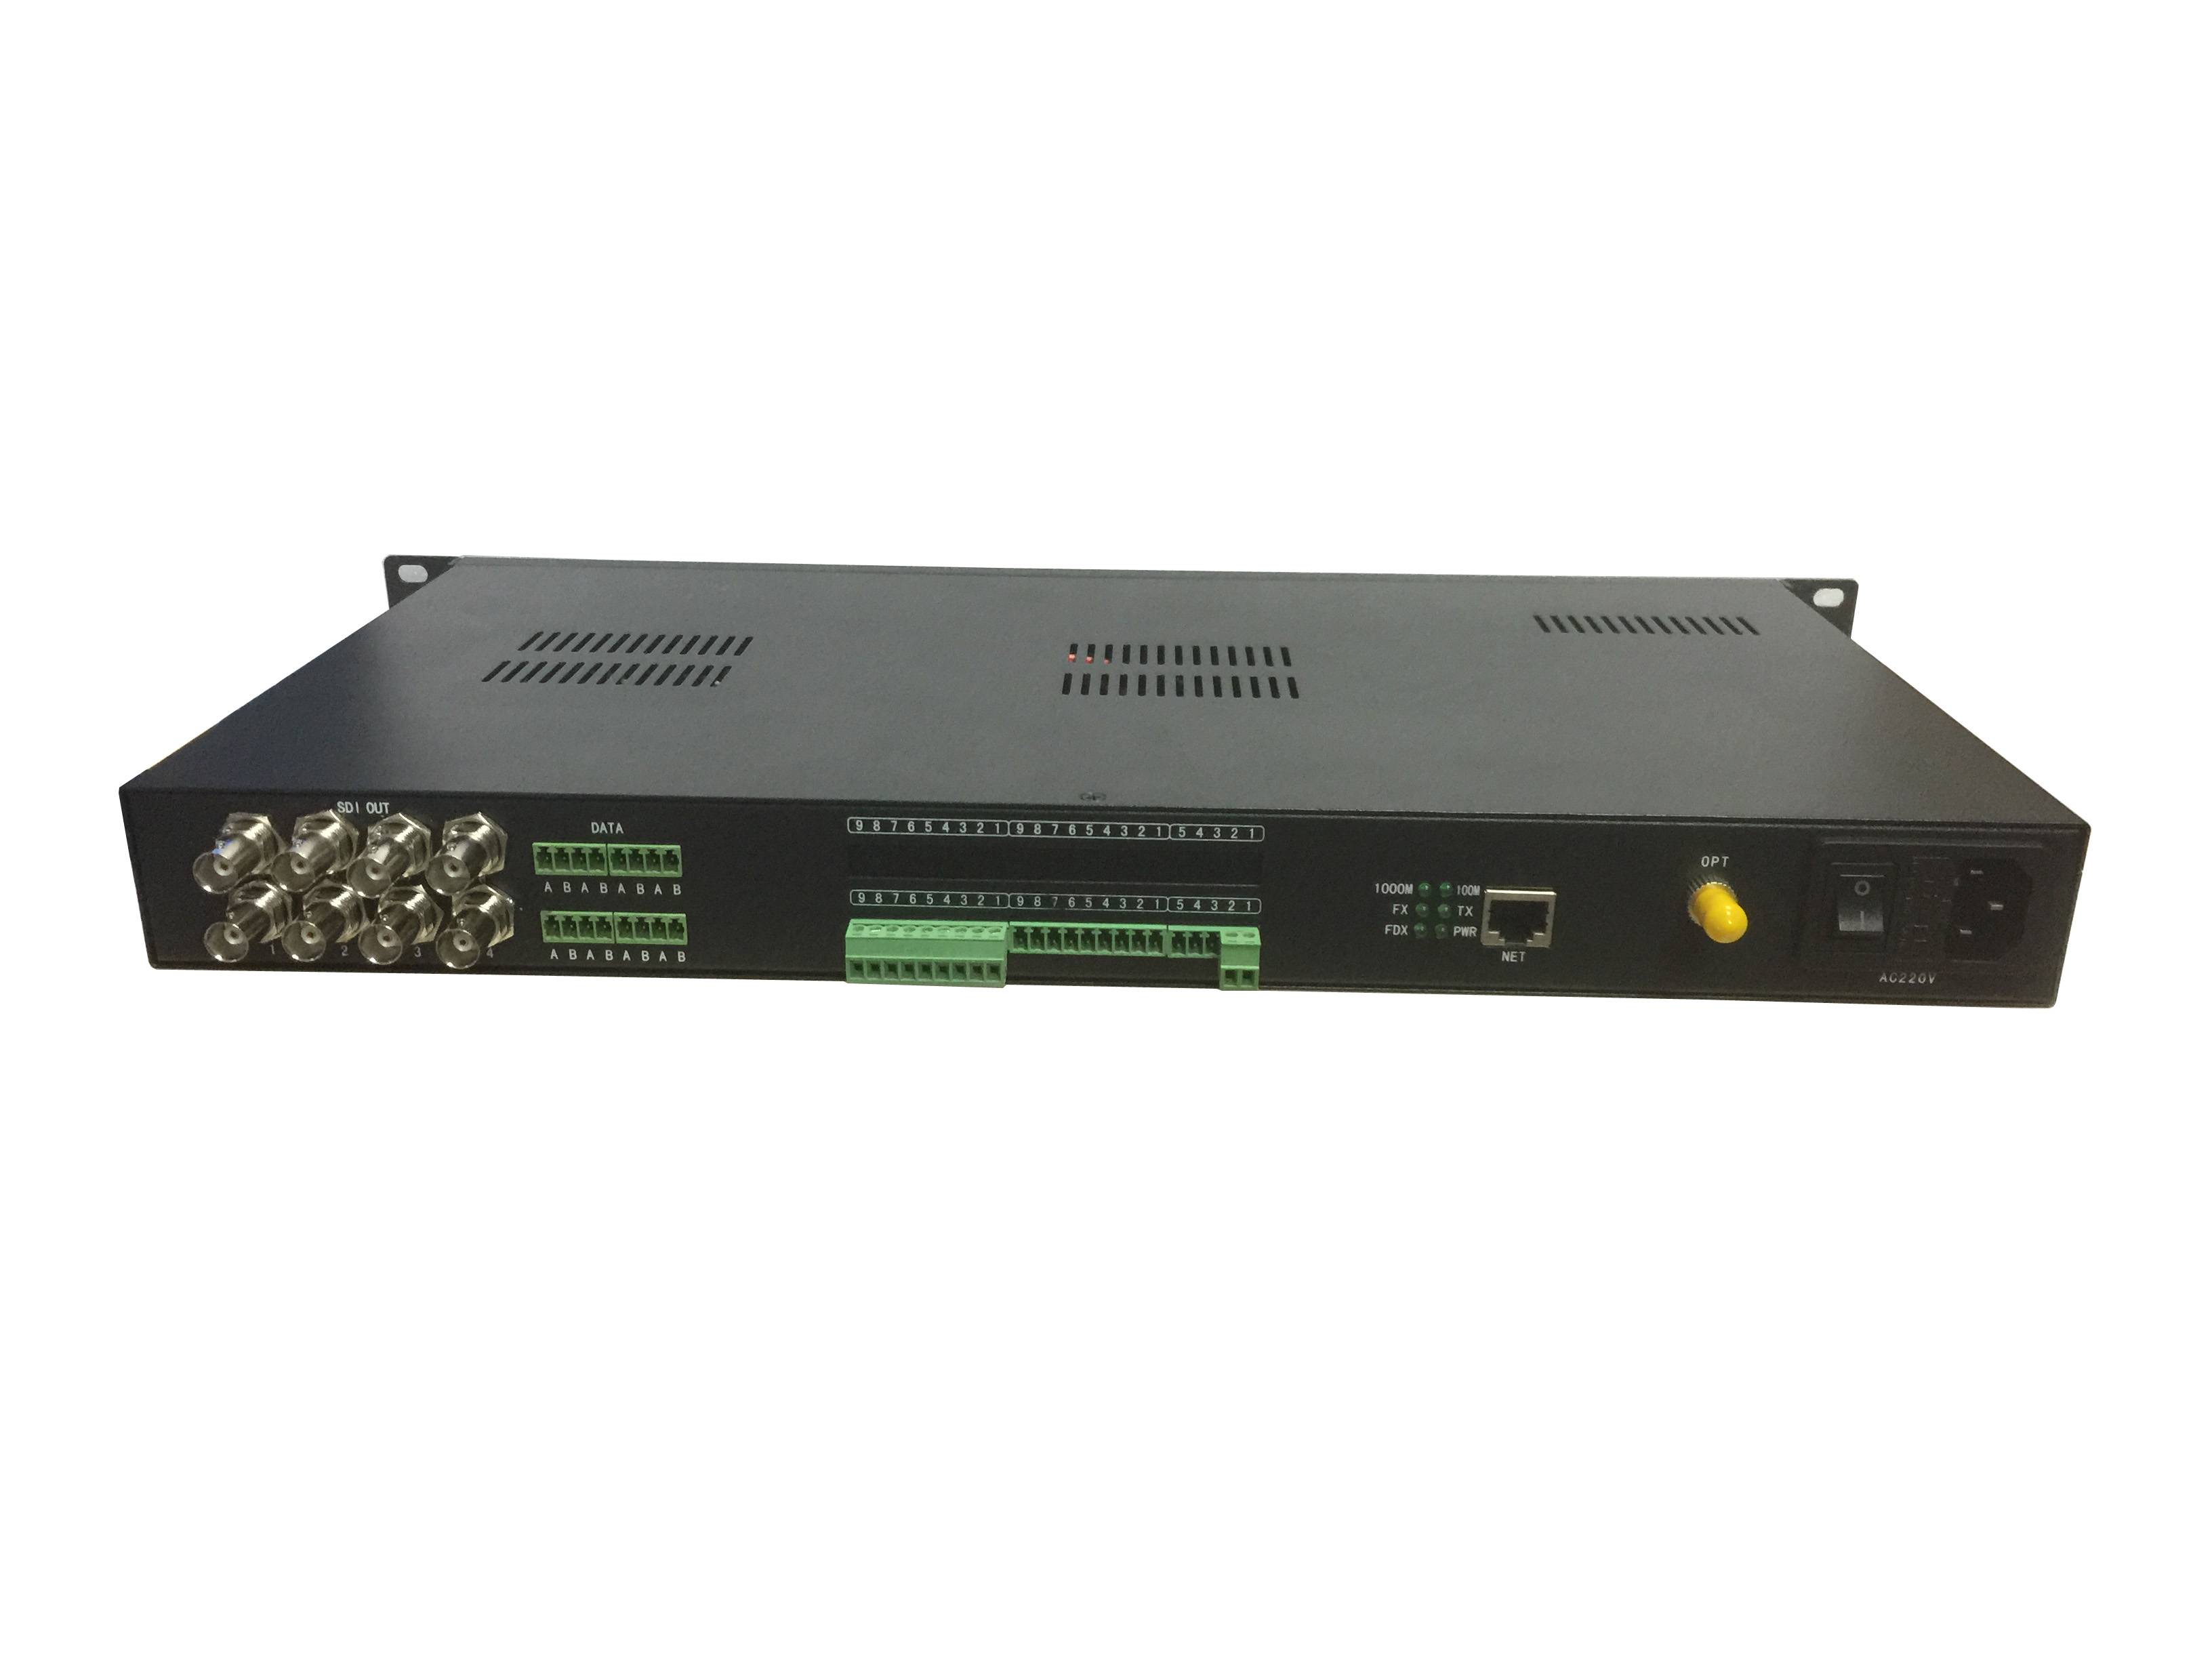 3G SDI fiber optic extender with data, audio, Ethernet